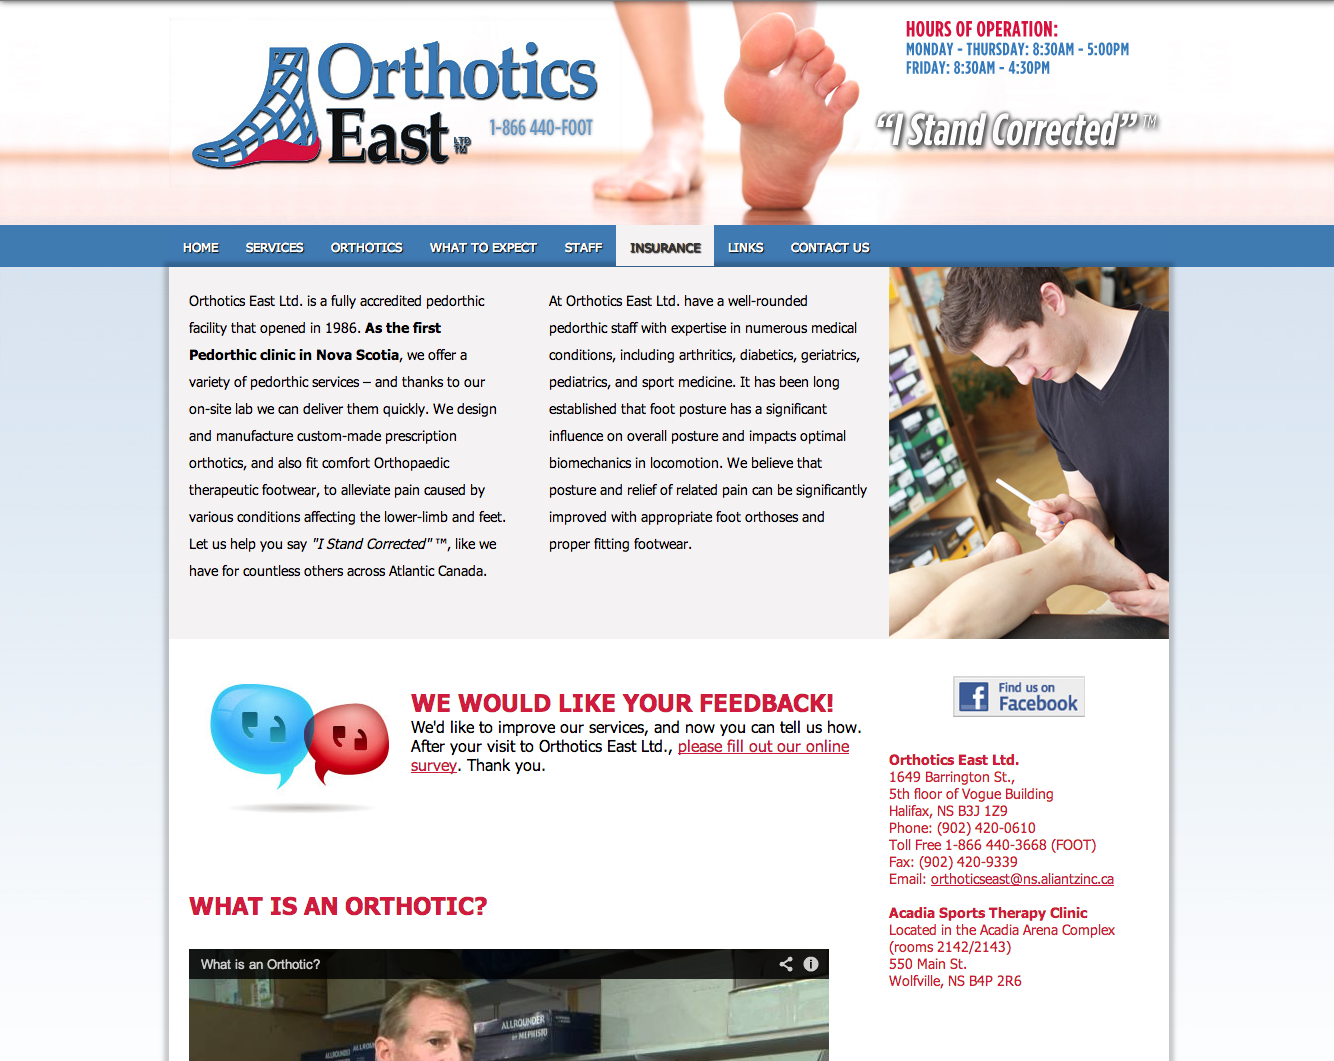 Orthotics East Ltd